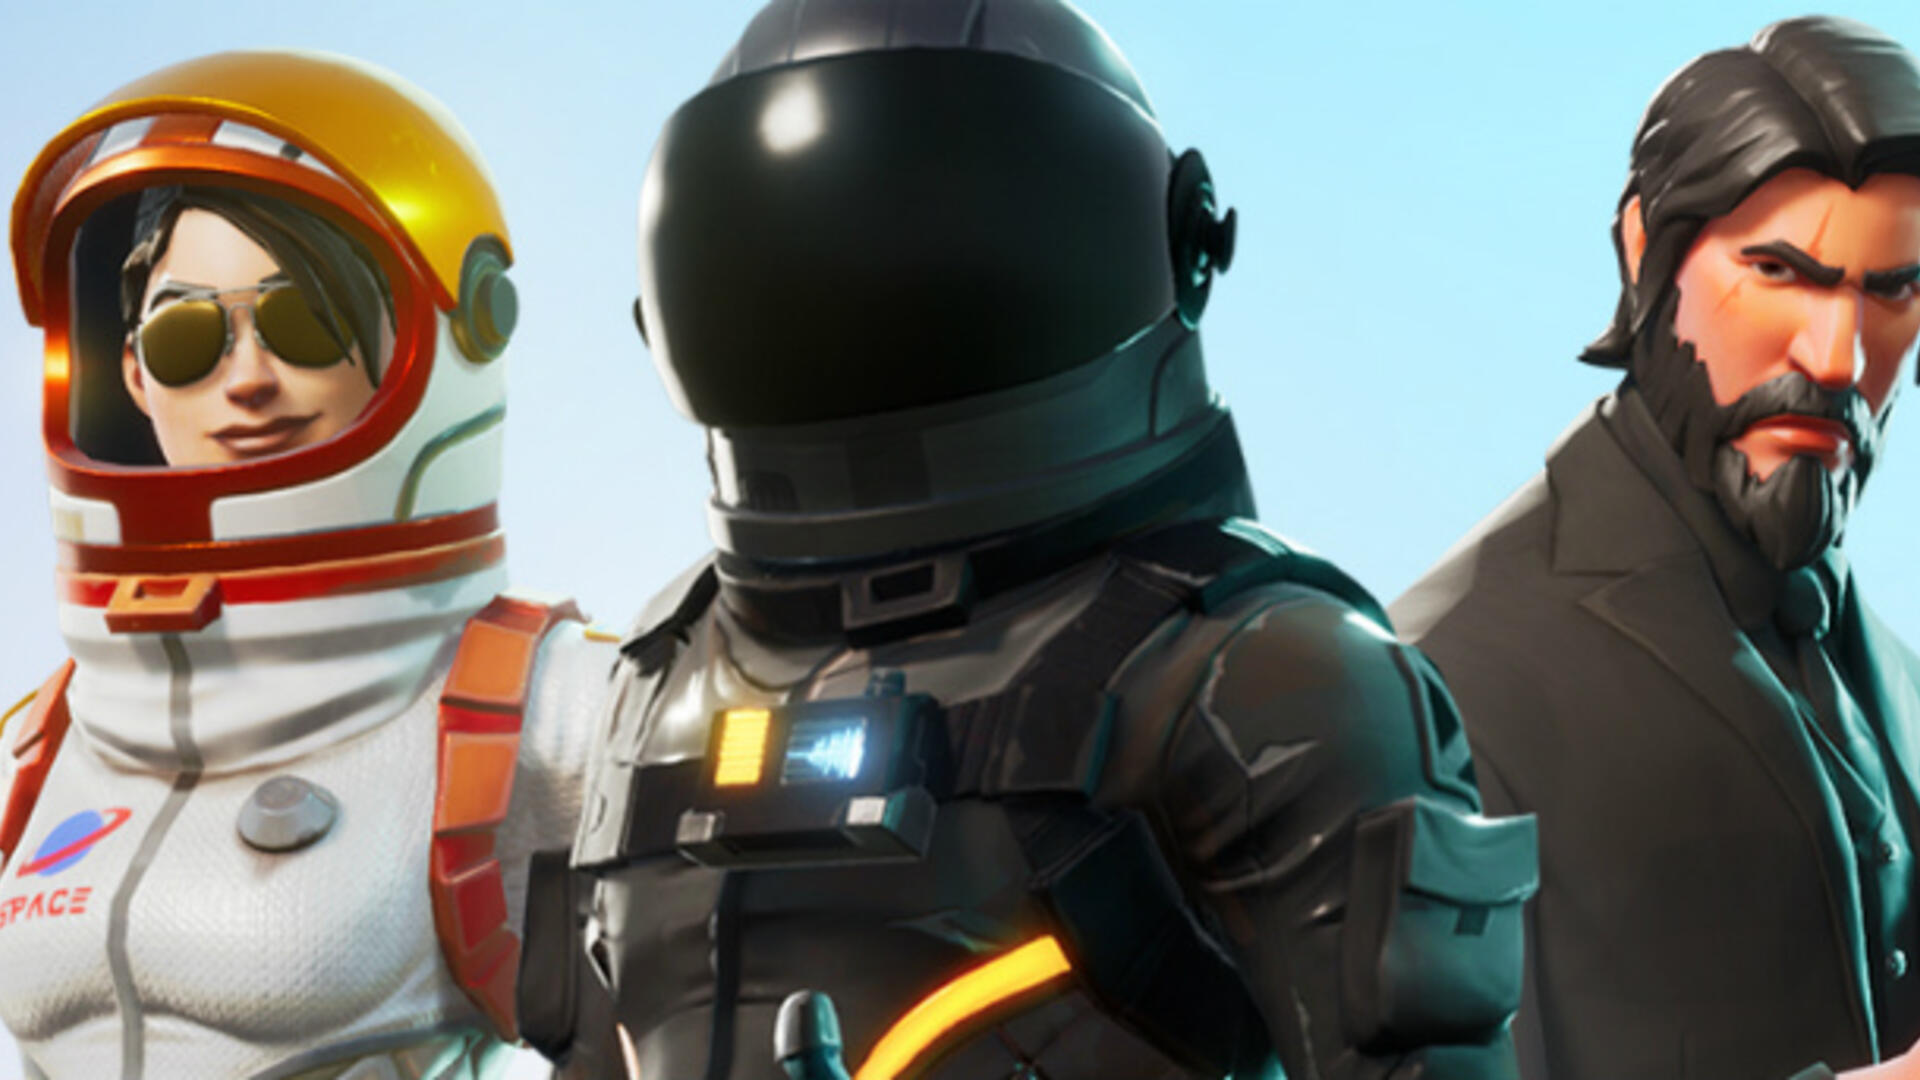 Fortnite Season 3 Speeds Up Building and Adds 60 FPS Mode on PS4 and Xbox One